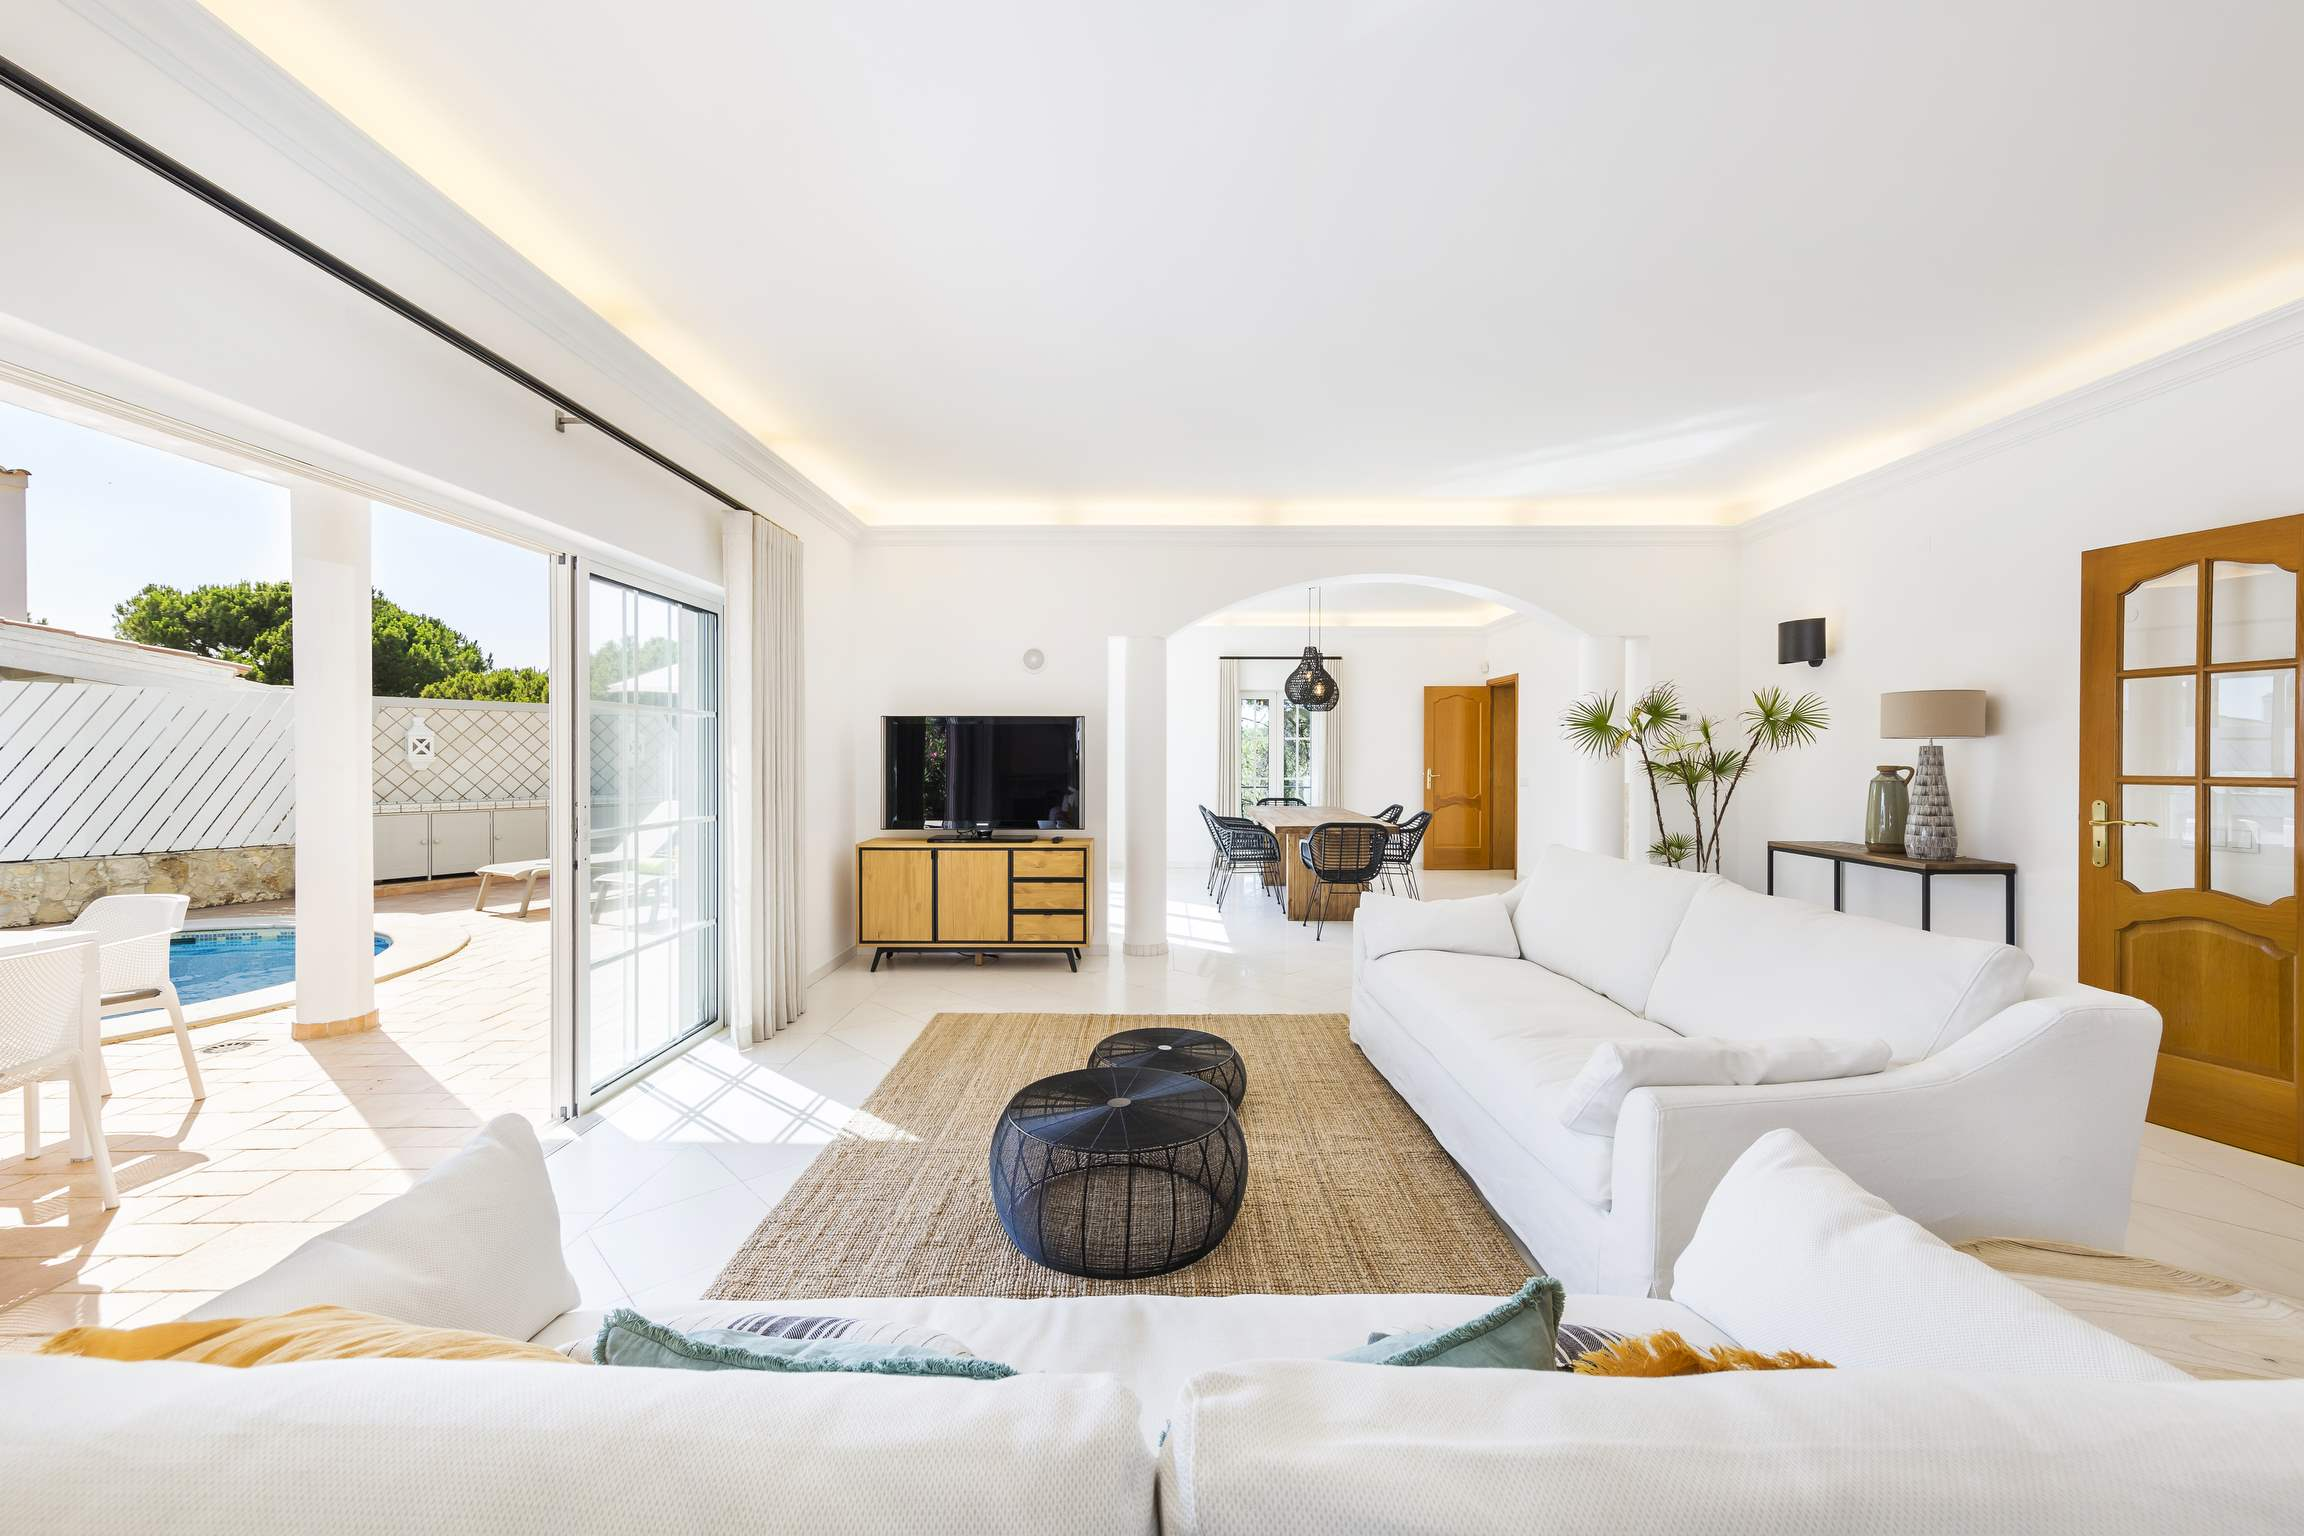 Casa Potes, 5 bedroom villa in Vale do Lobo, Algarve Photo #7